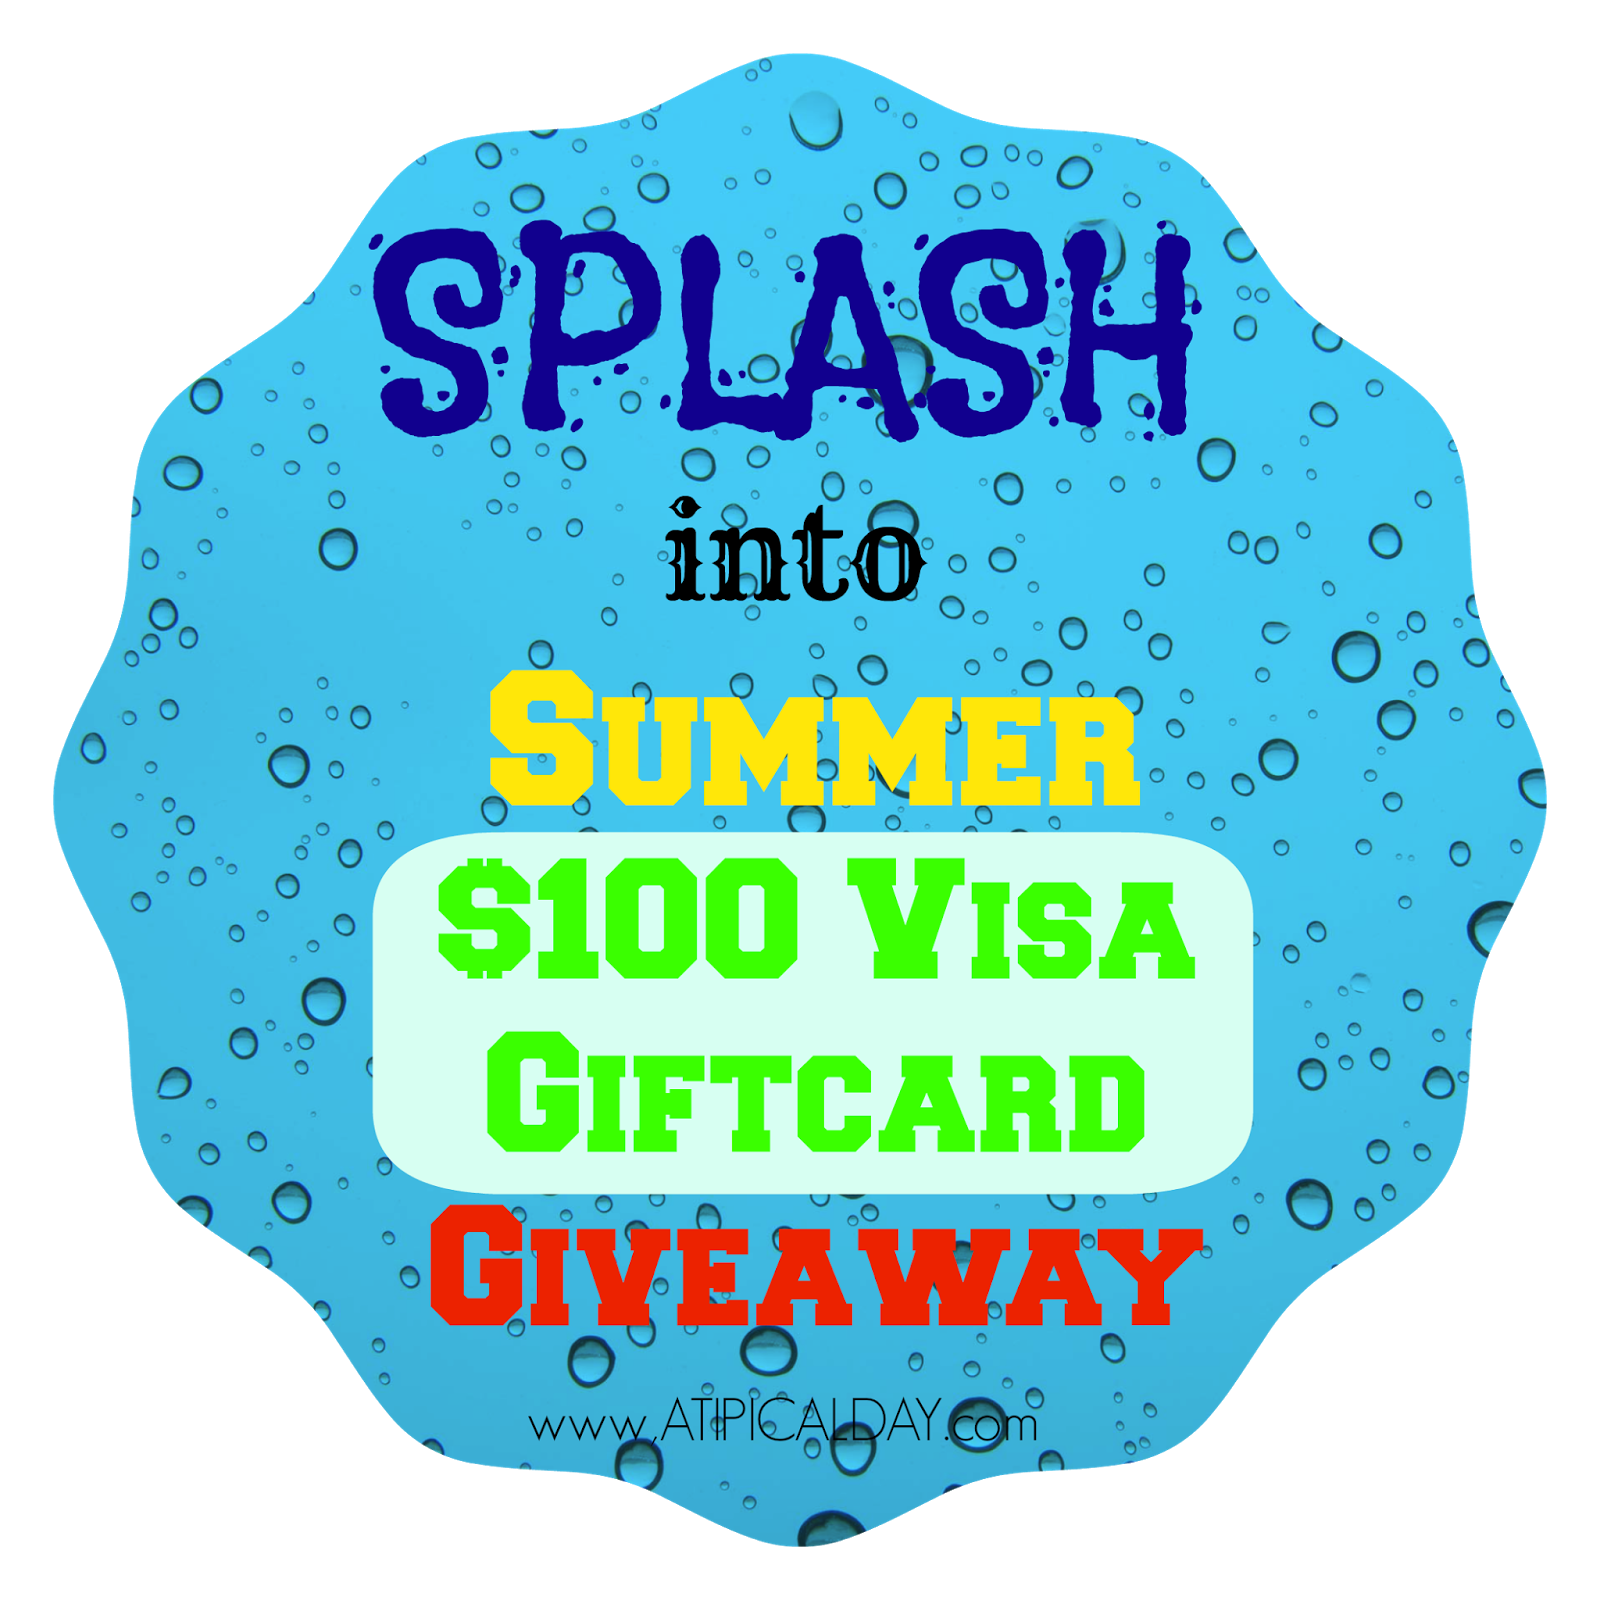 Splash into Summer $100 Visa Giftcard Giveaway @ATIPicalDay #giveaway #summerfun #waterplay #$100VisaGiftcard #watergames #waterplayideas